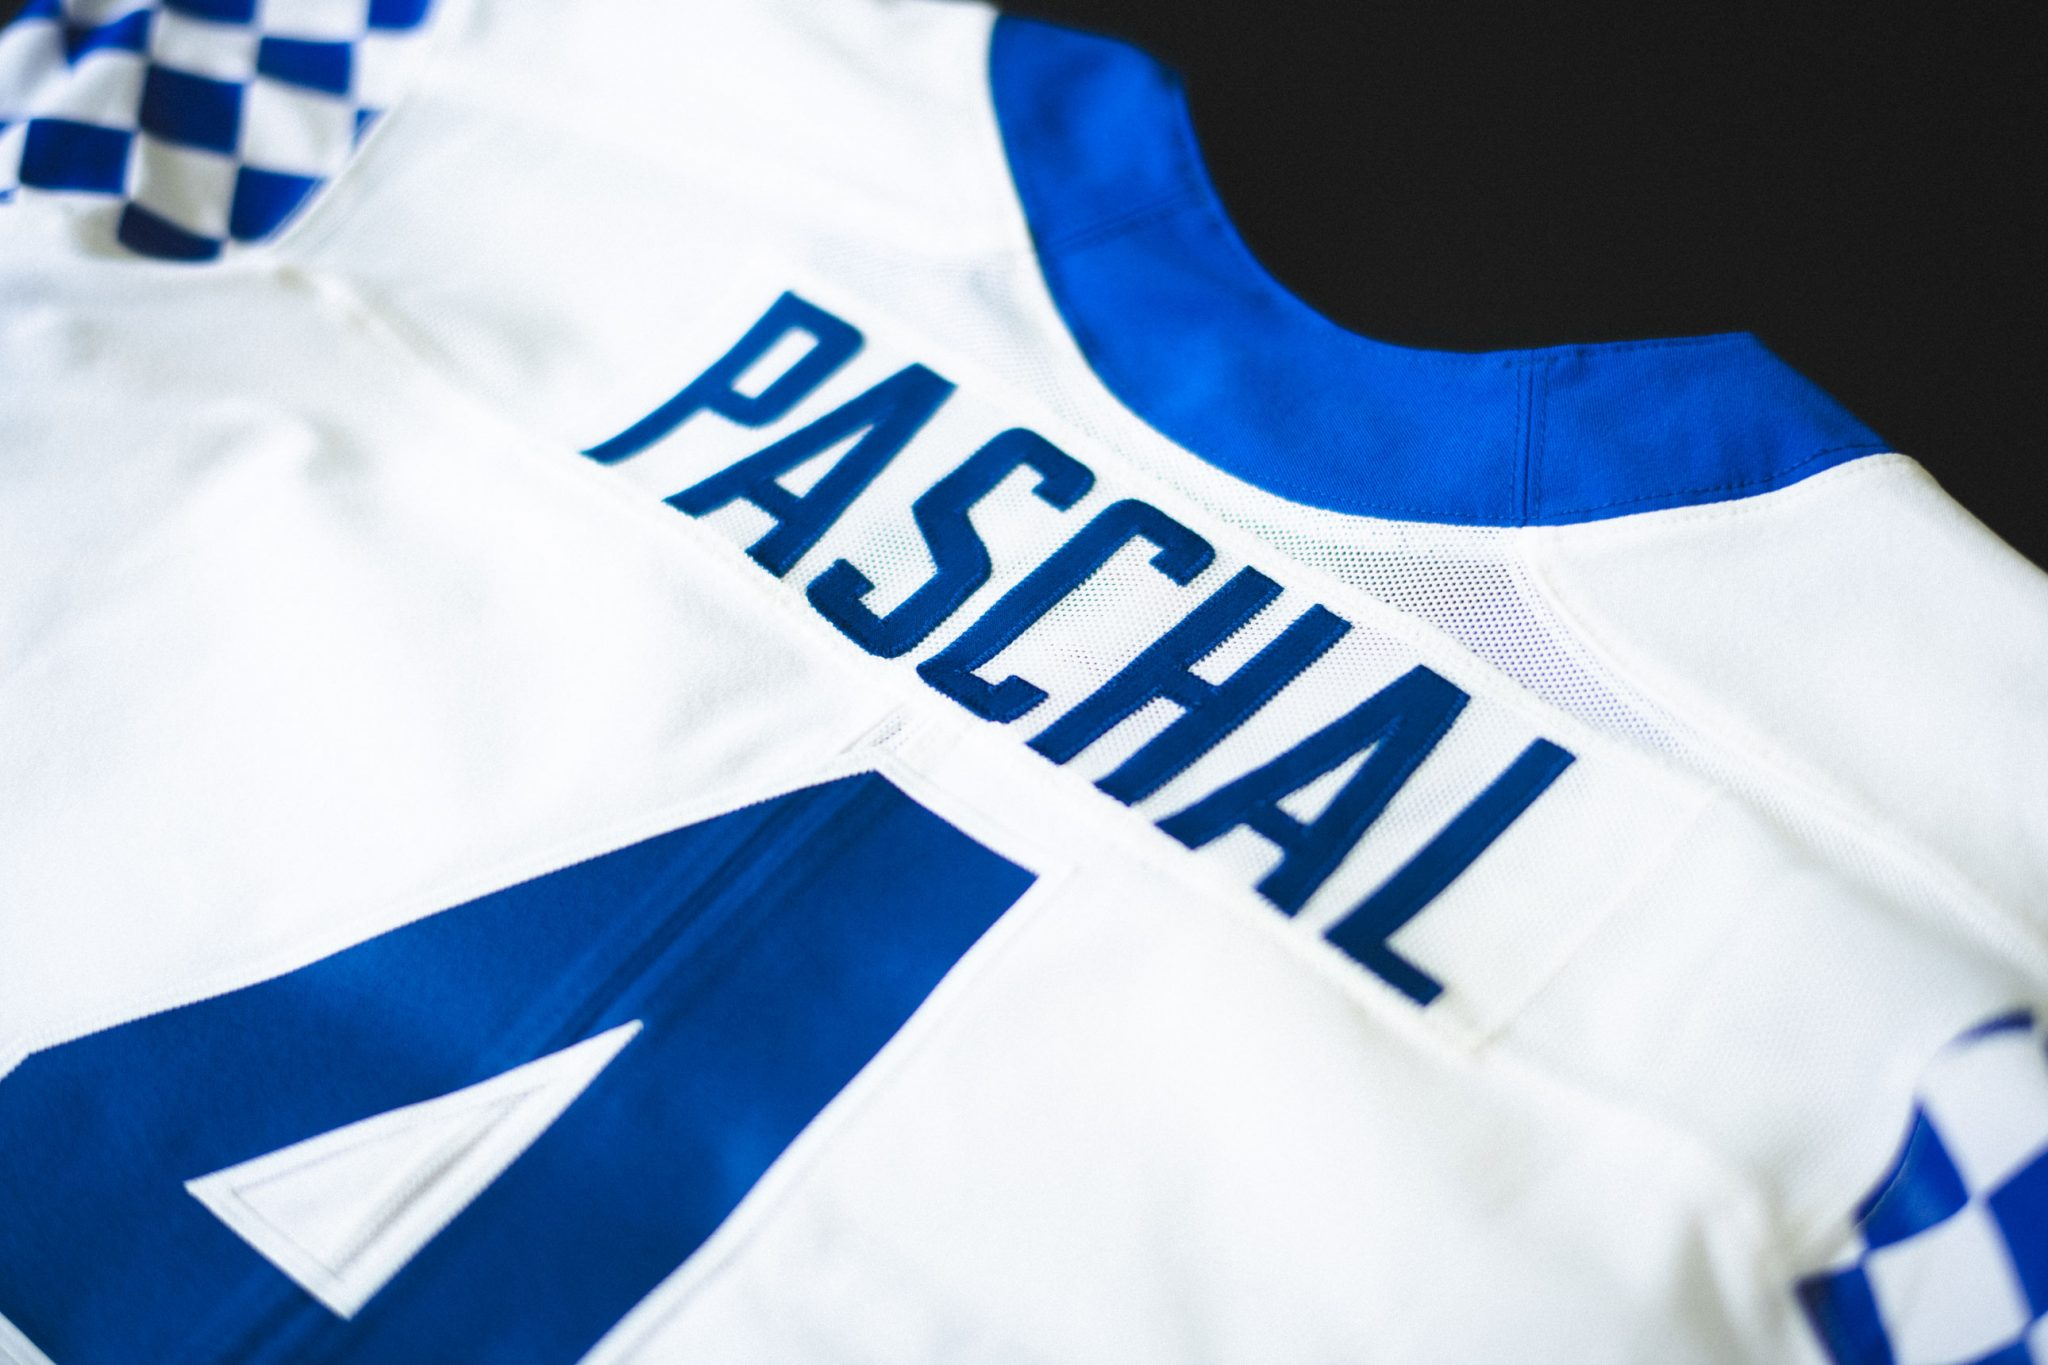 Closeup of the back of Josh's jersey - PASCHAL and the number 4.